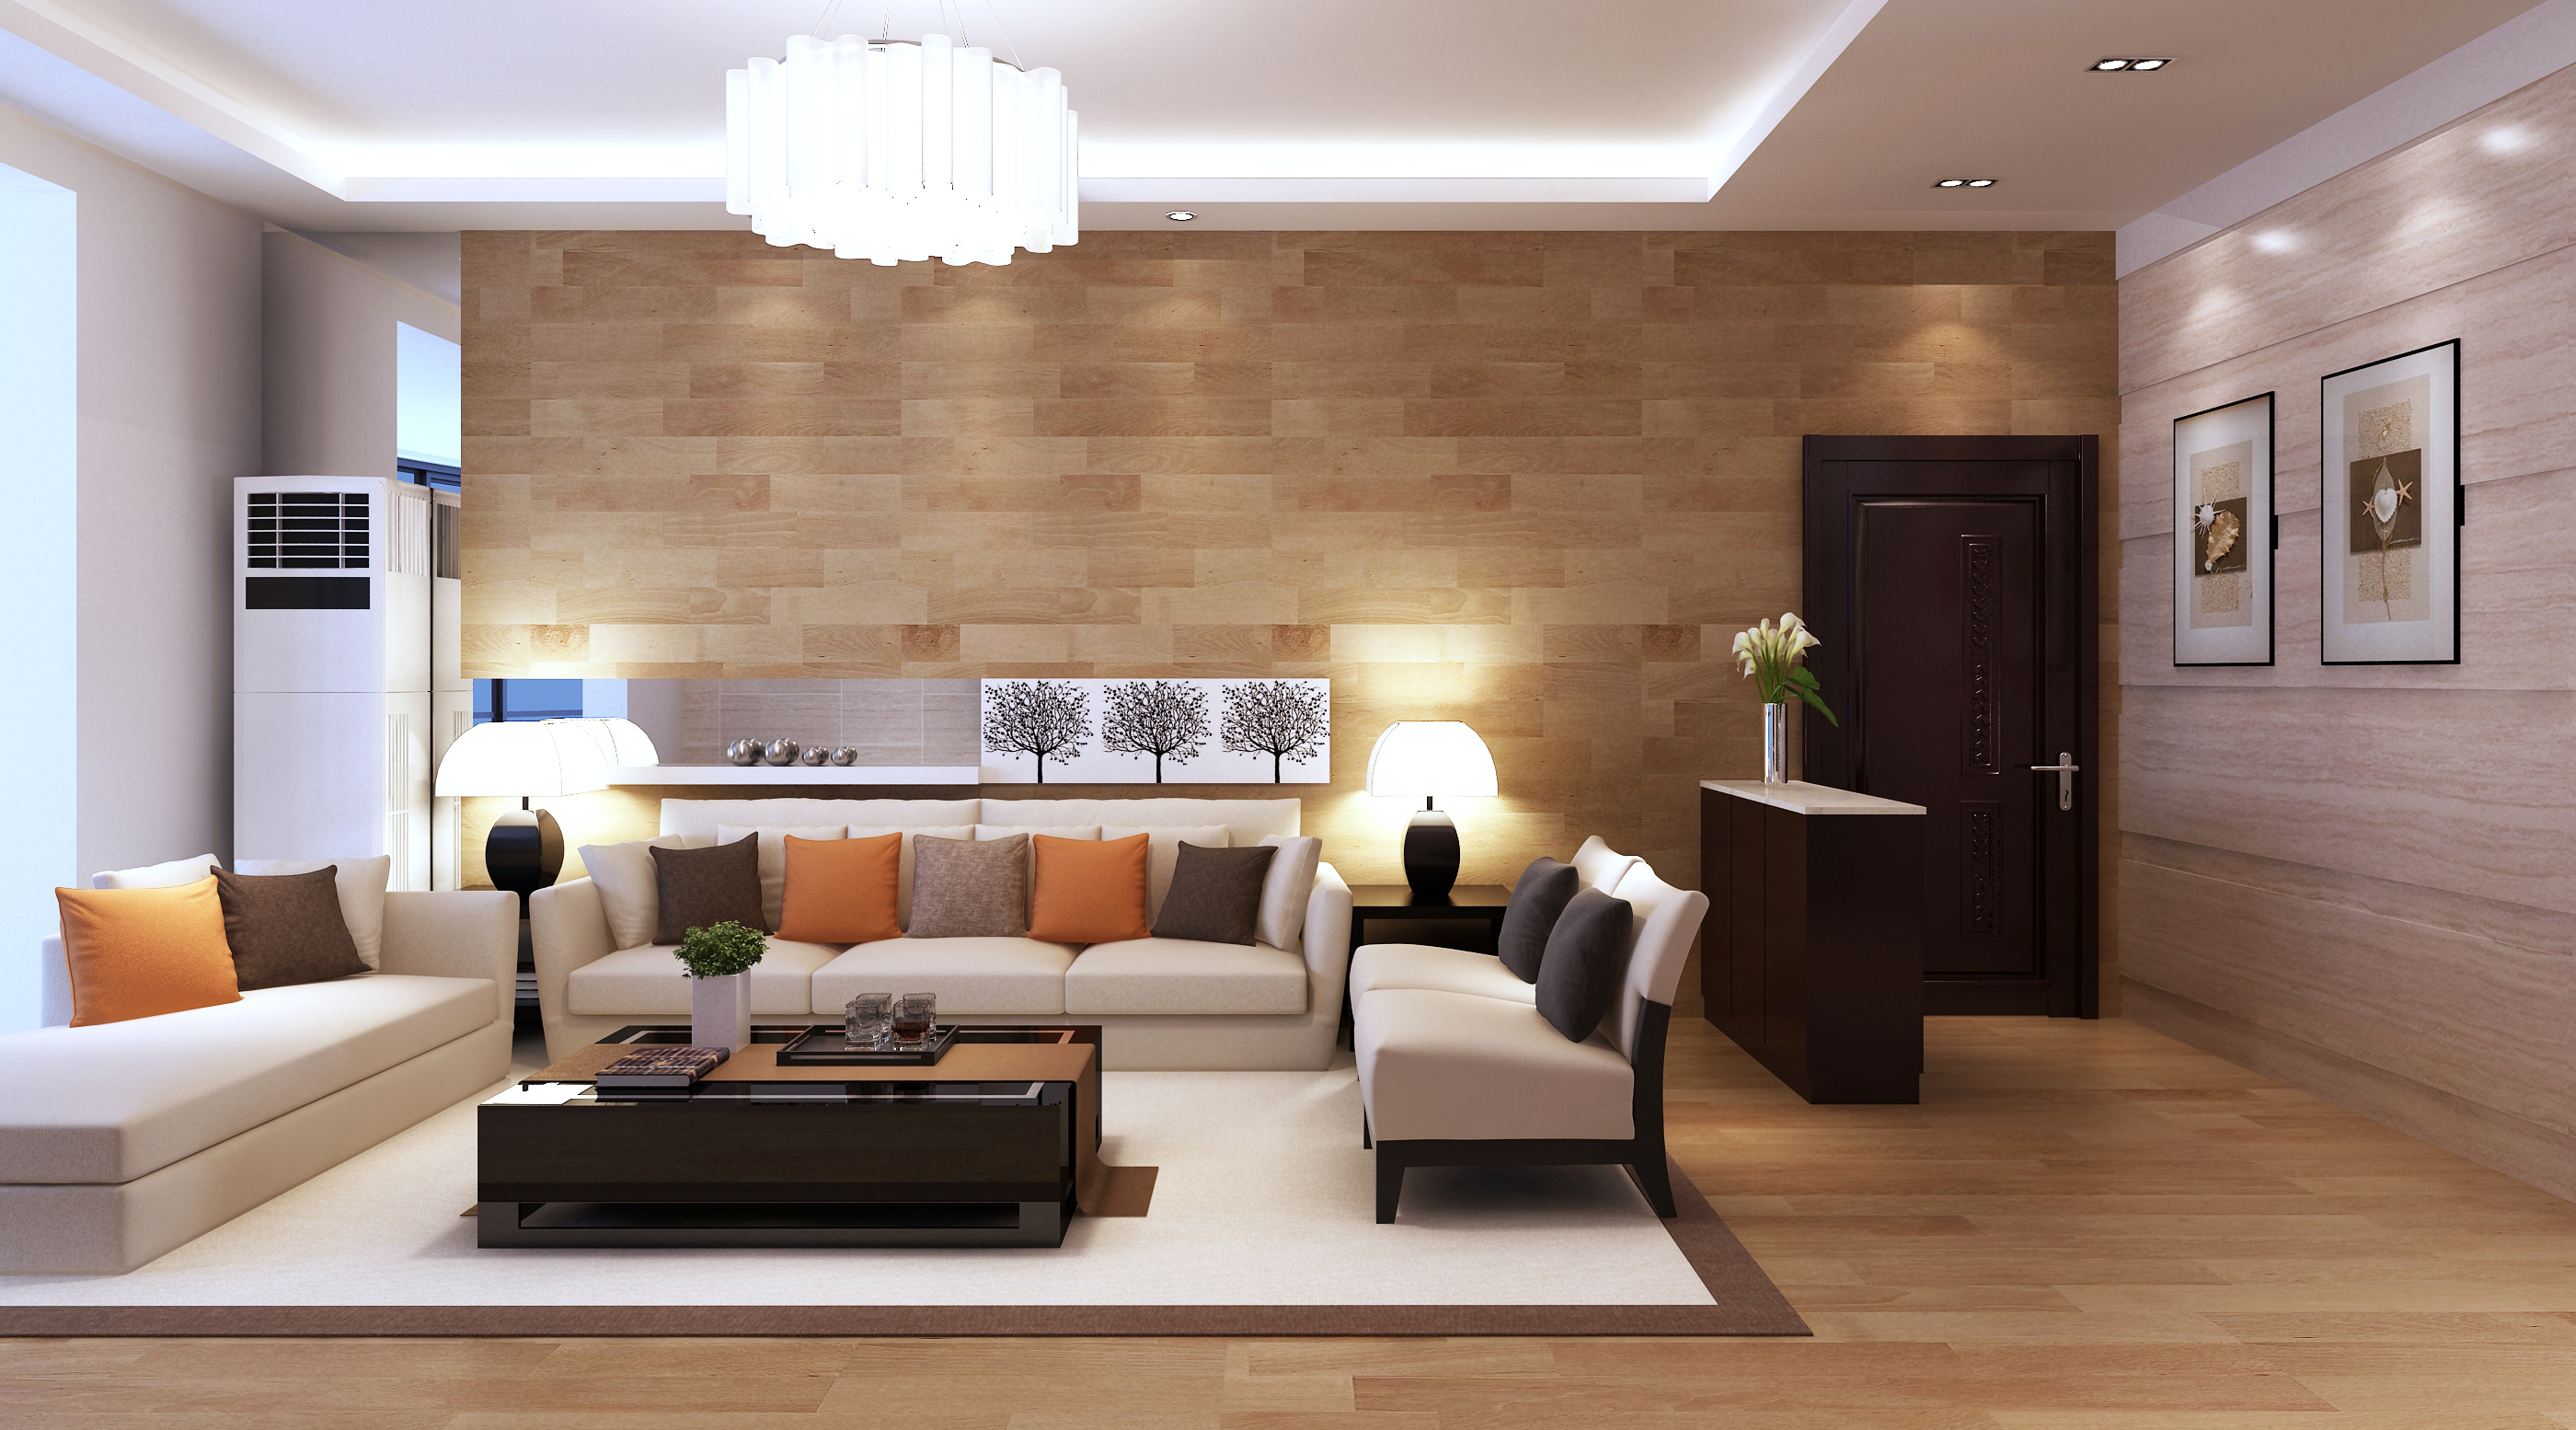 Living Room Model Adorable 3D Model Modern Living Room Architectural  Cgtrader Inspiration